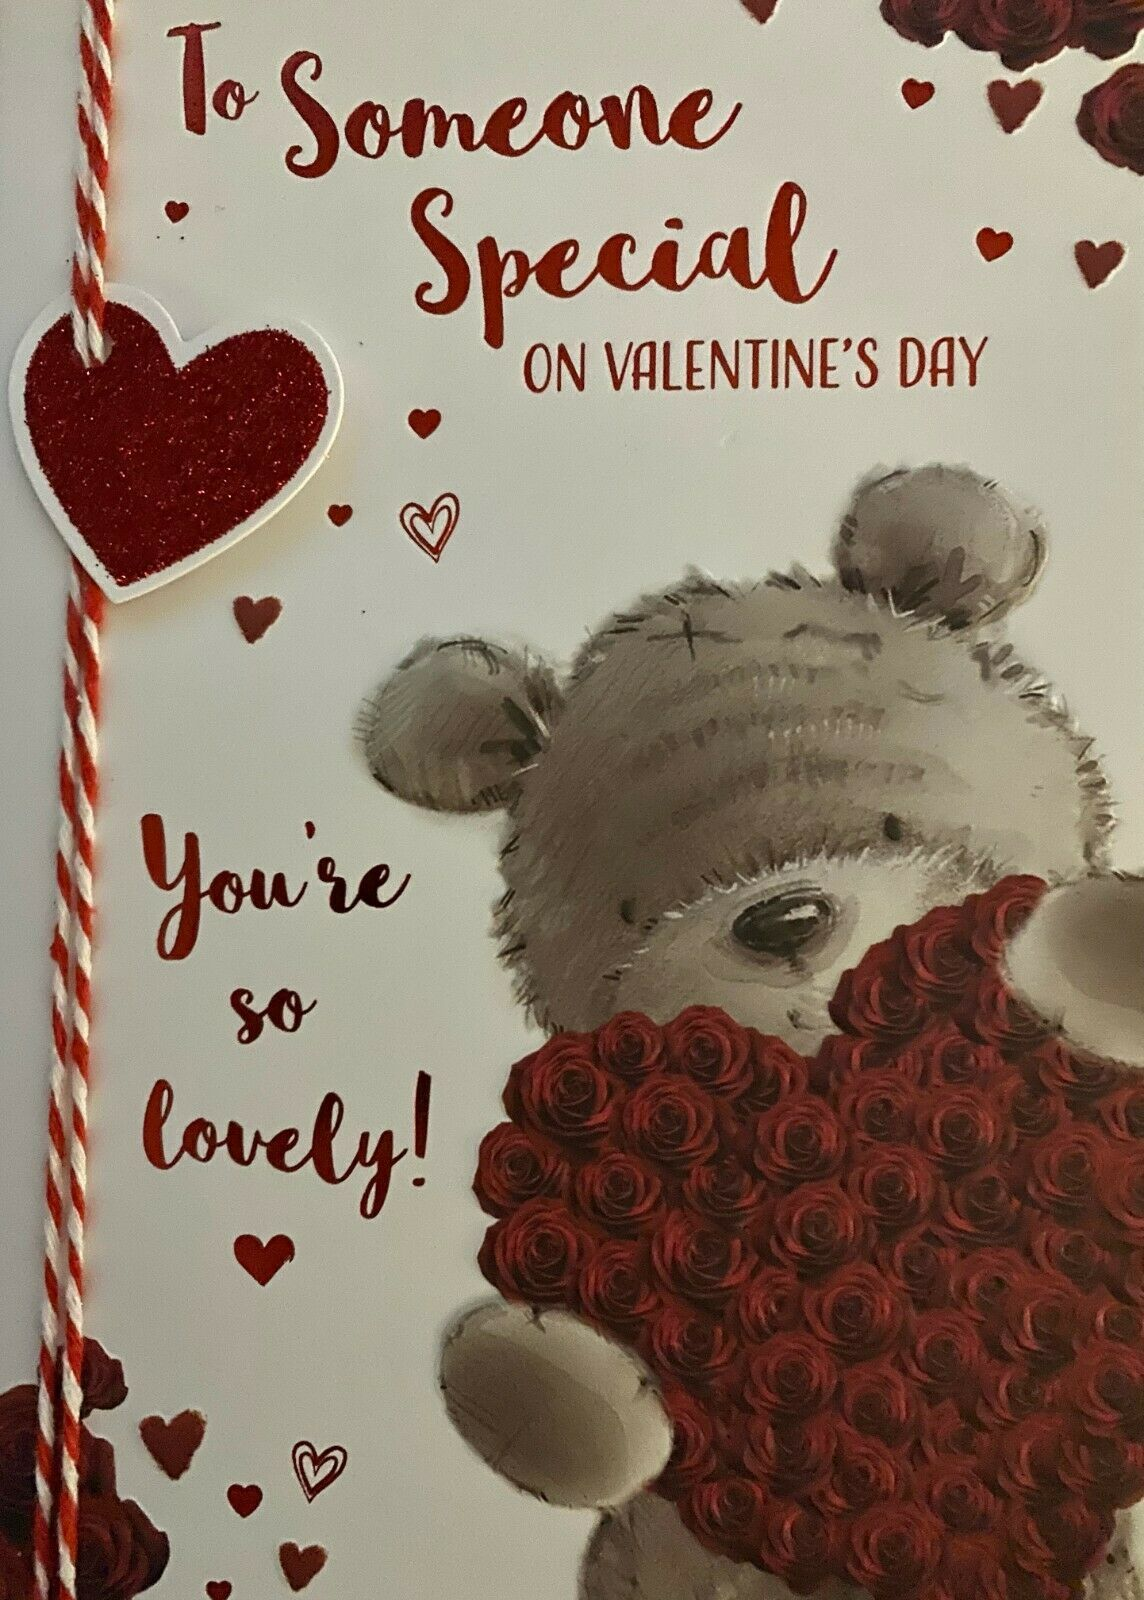 Valentine's Day Card To Someone Special - You're So Lovely!